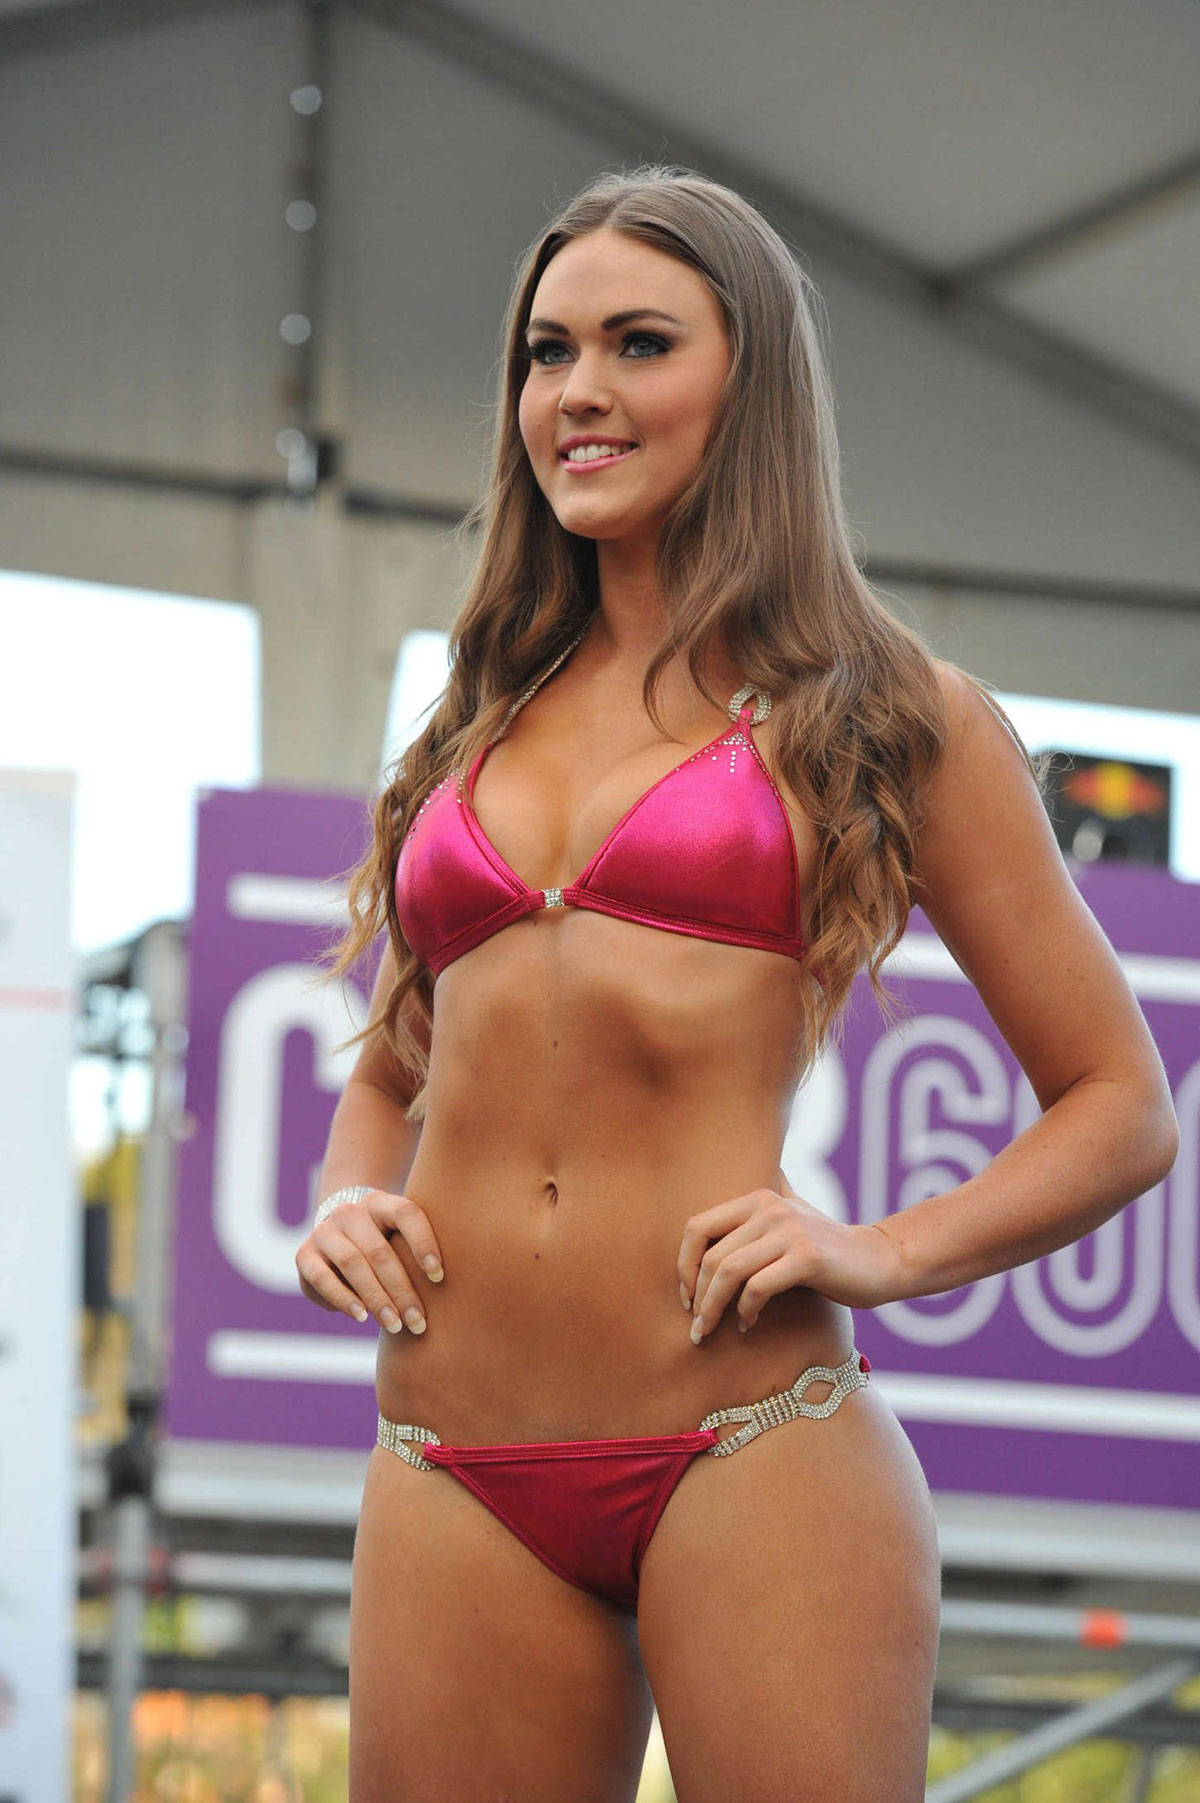 Pin Miss No Swimsuit Contest on Pinterest